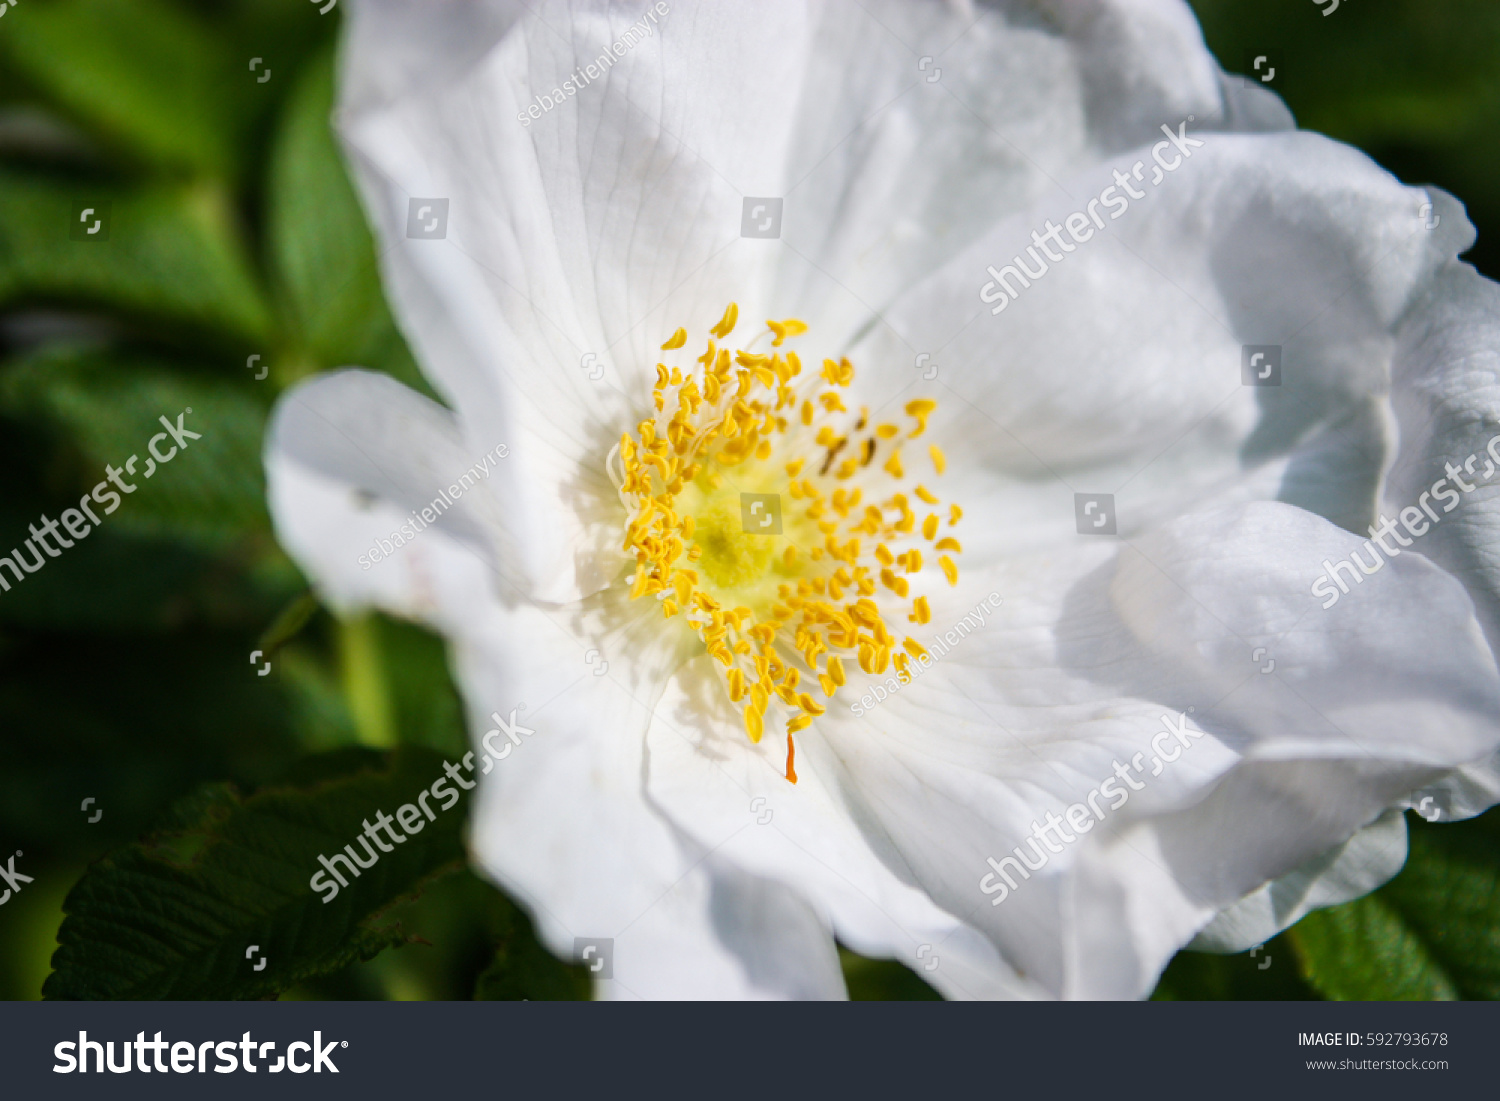 Beautiful White Flower Yellow Stamen Stock Photo Edit Now